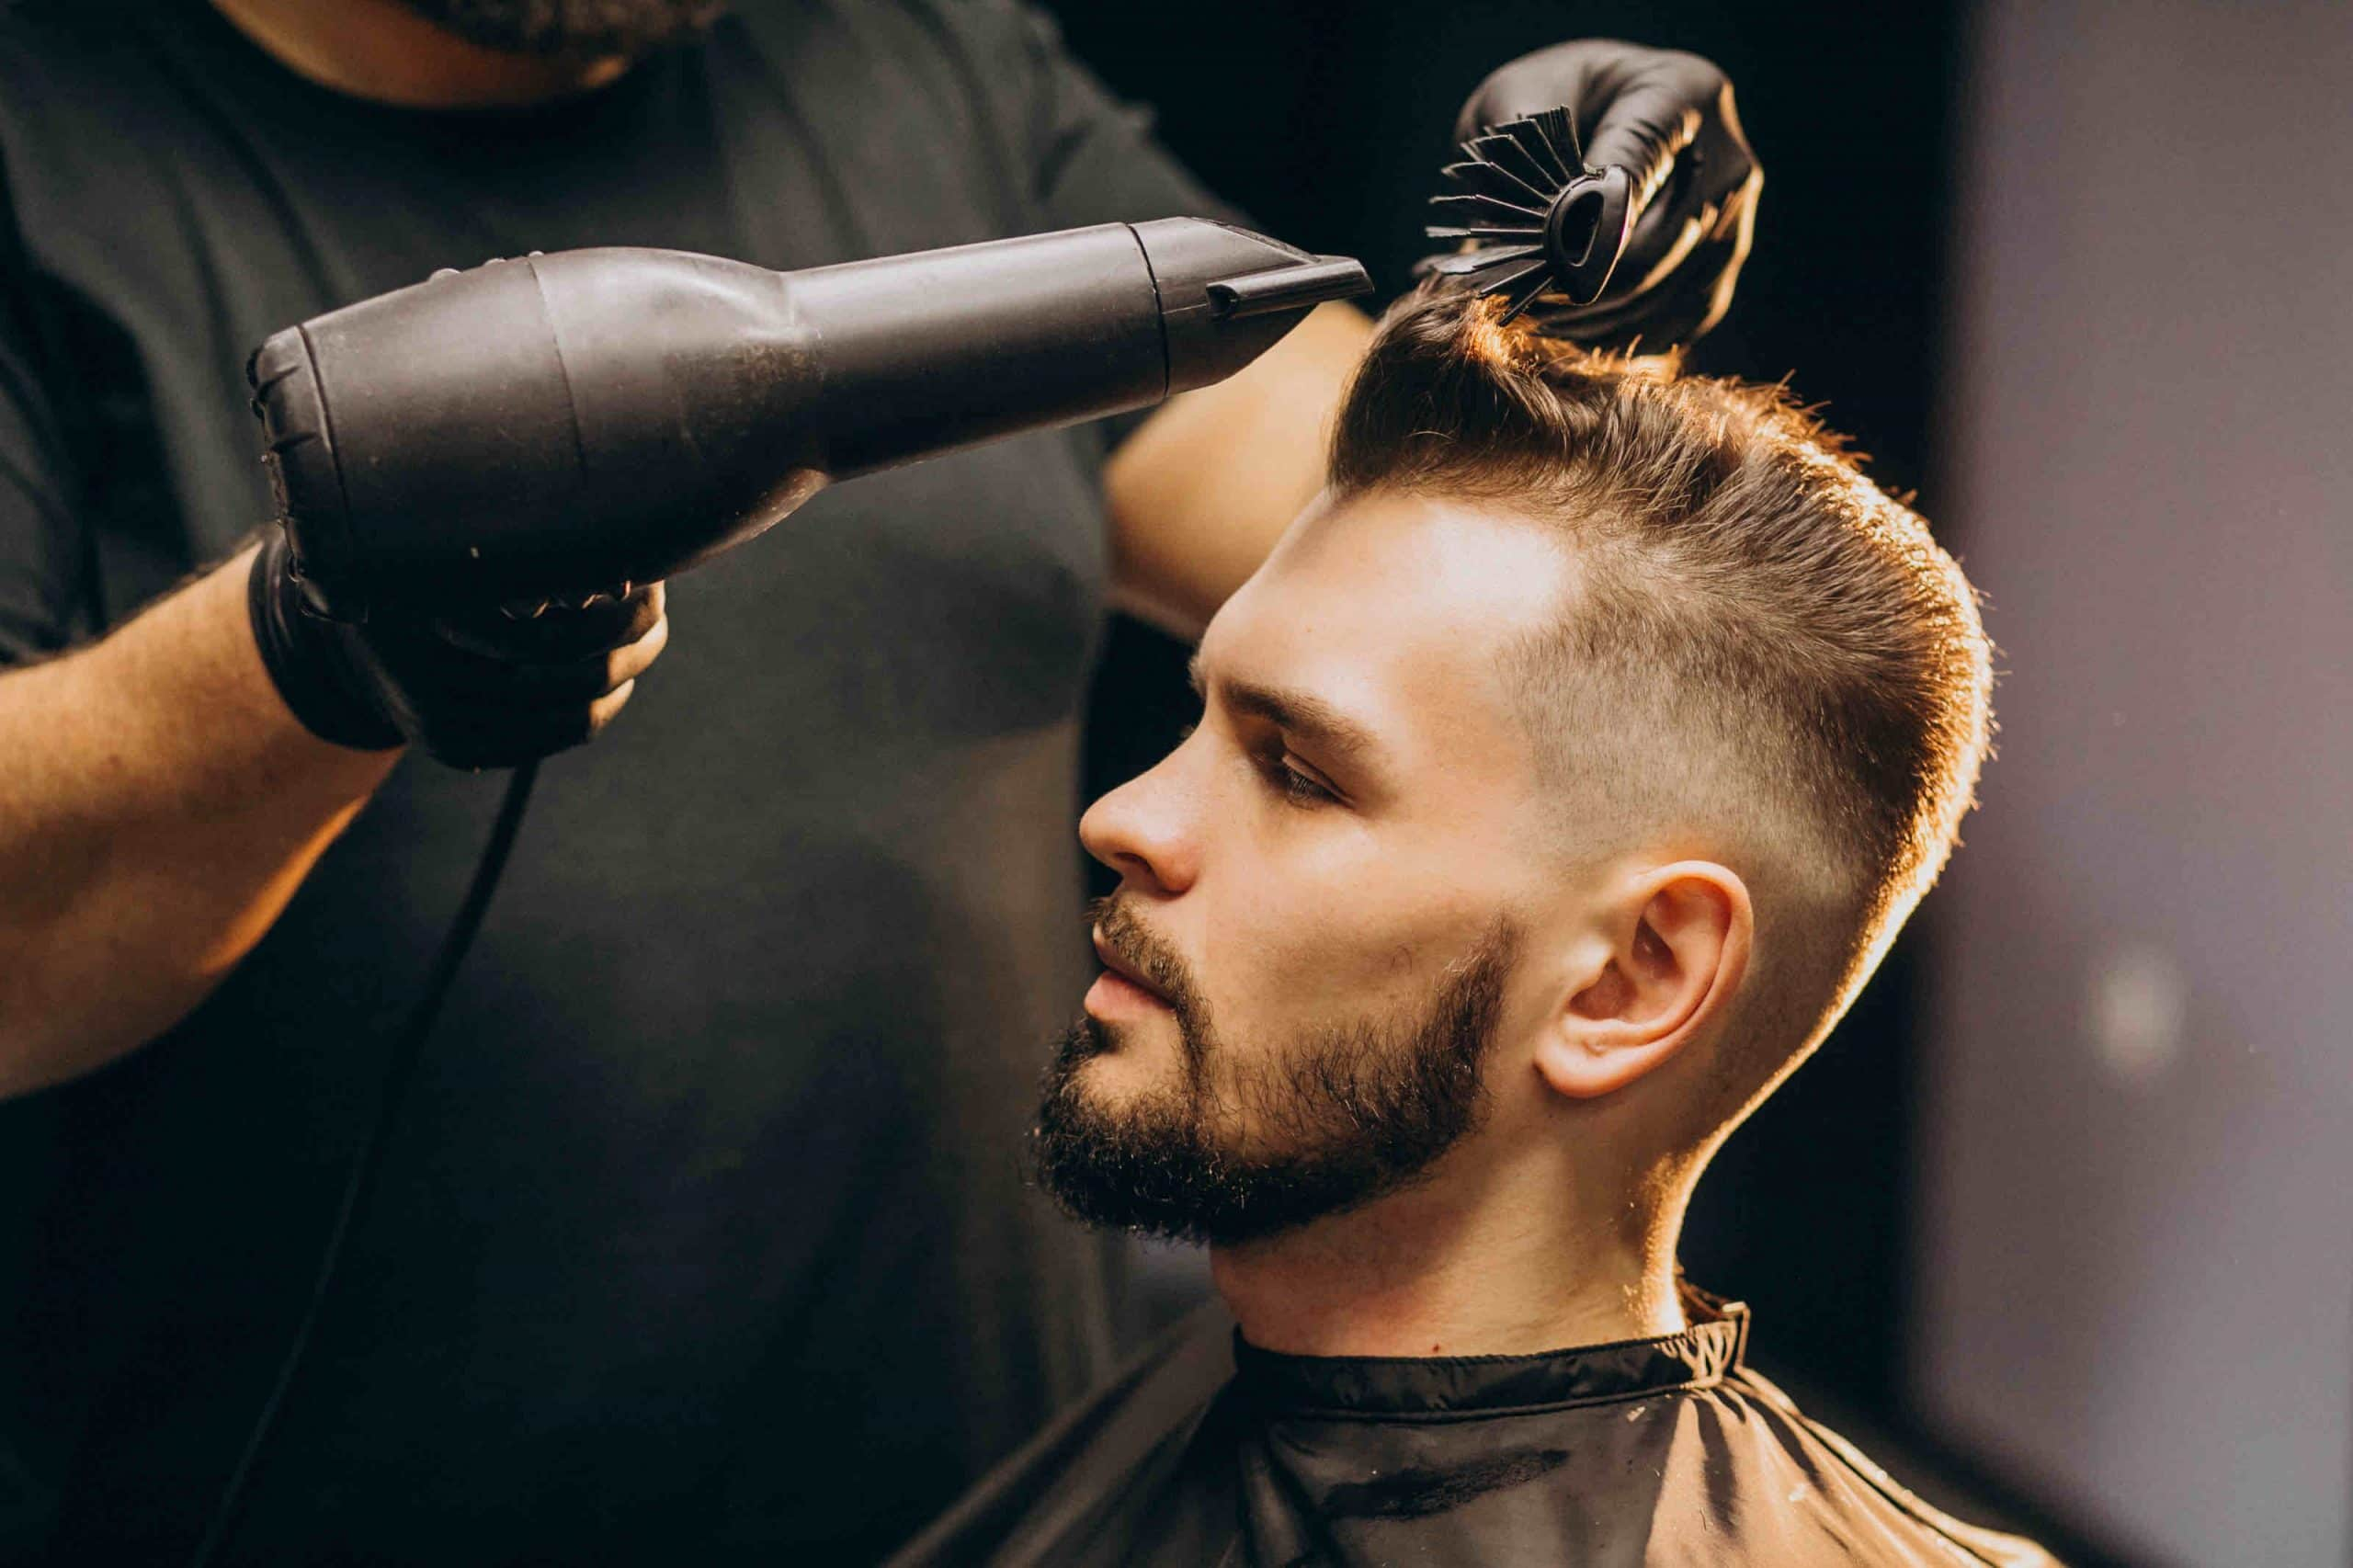 guy-cut-blow-dry-image-image-scaled